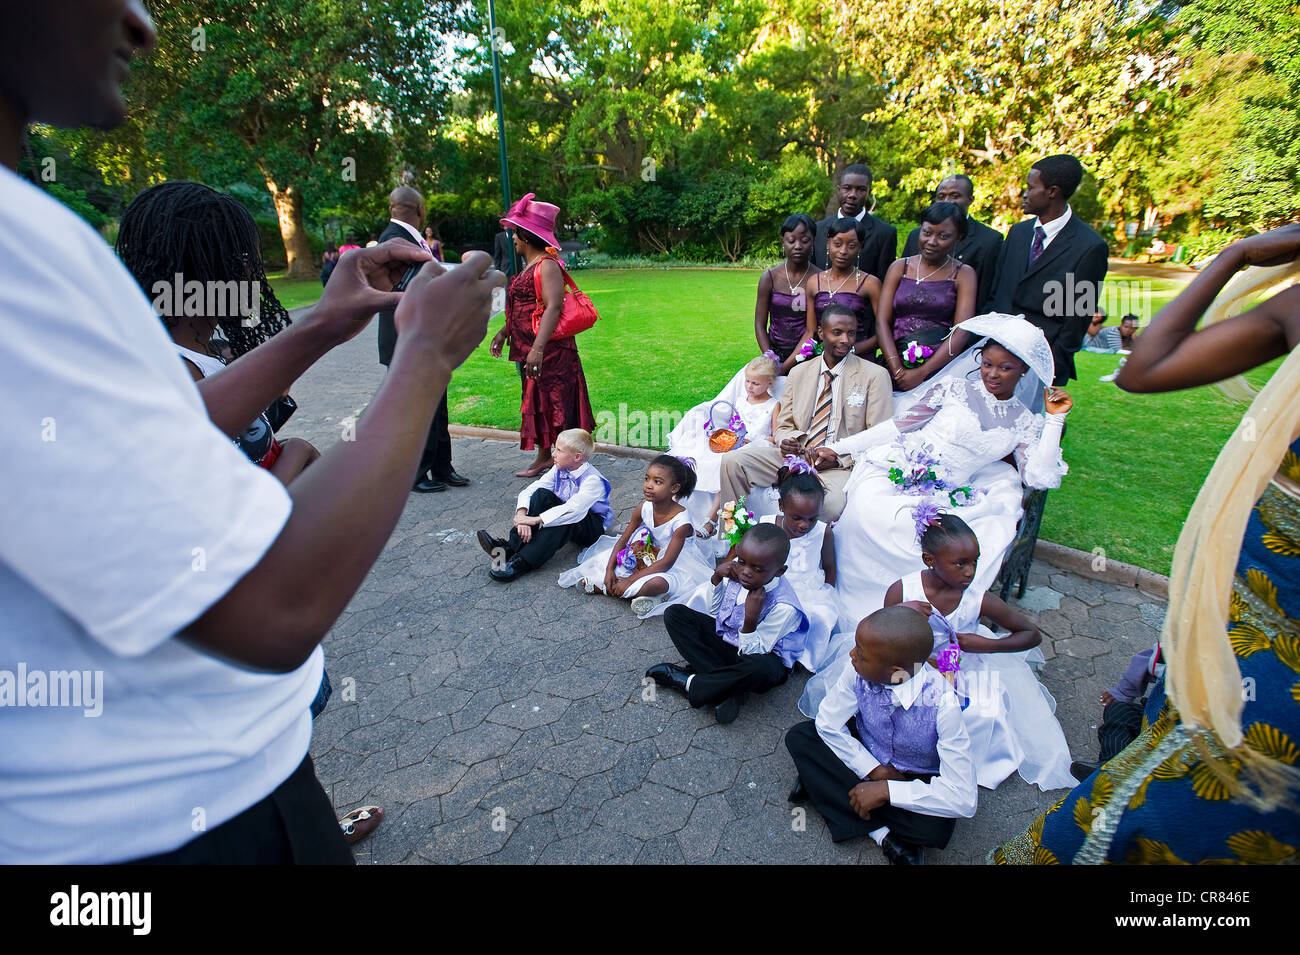 South Africa, Western Cape, Cape Town, wedding of Zaire immigrants in the Company's Garden - Stock Image